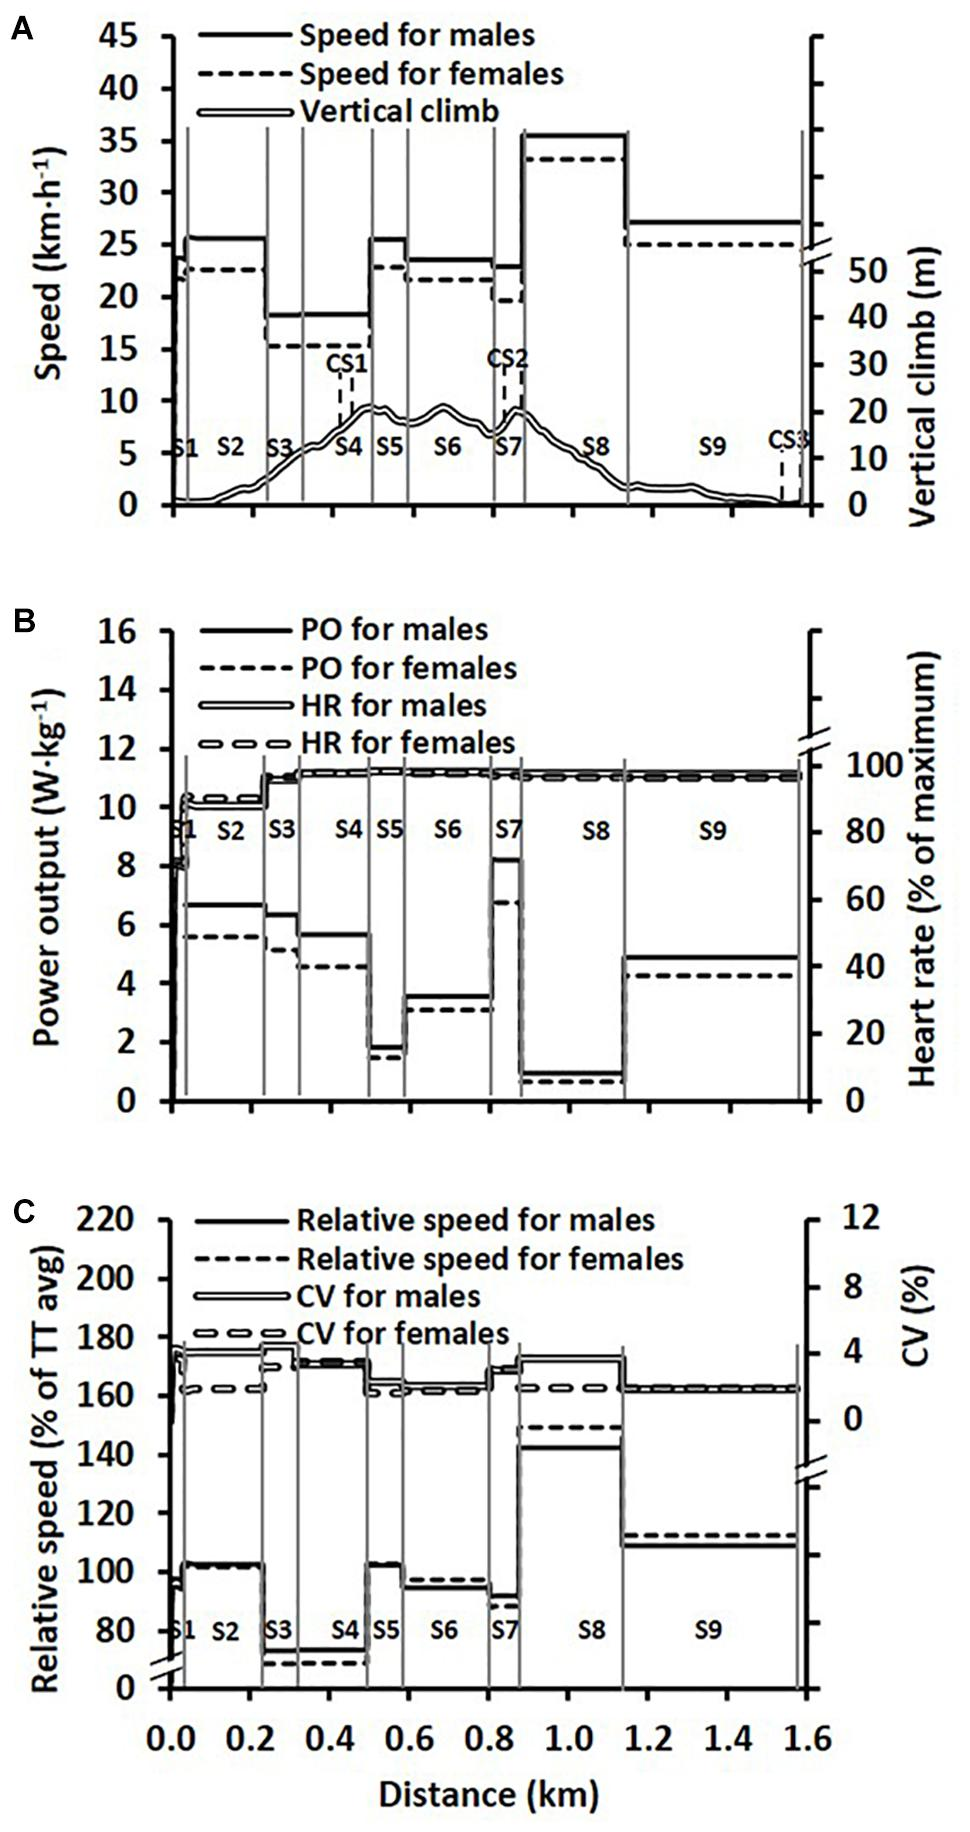 Frontiers | Sex Differences in Performance and Pacing Strategies